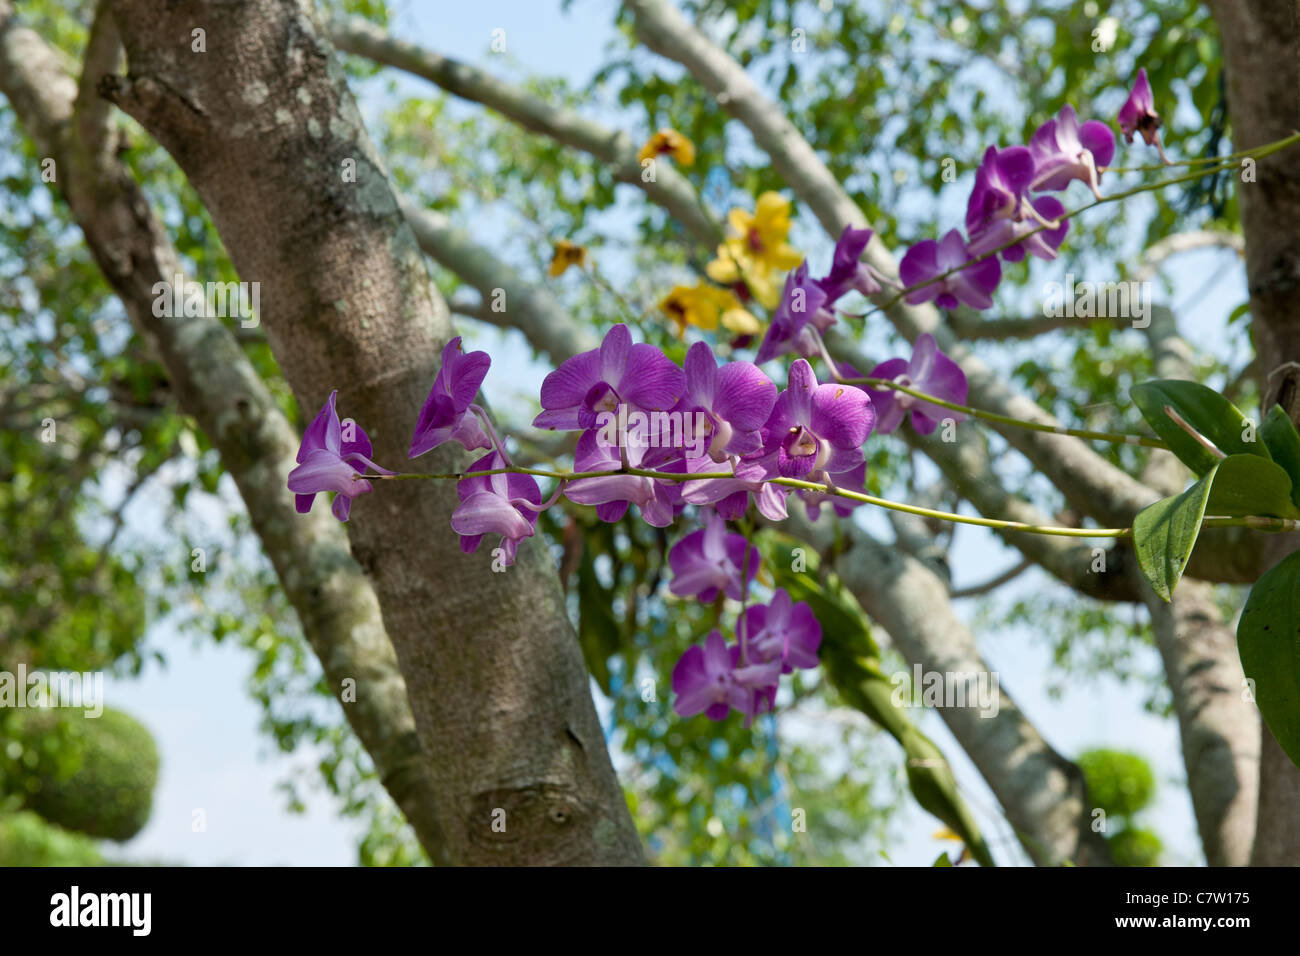 orchids in tree stockfotos orchids in tree bilder alamy. Black Bedroom Furniture Sets. Home Design Ideas